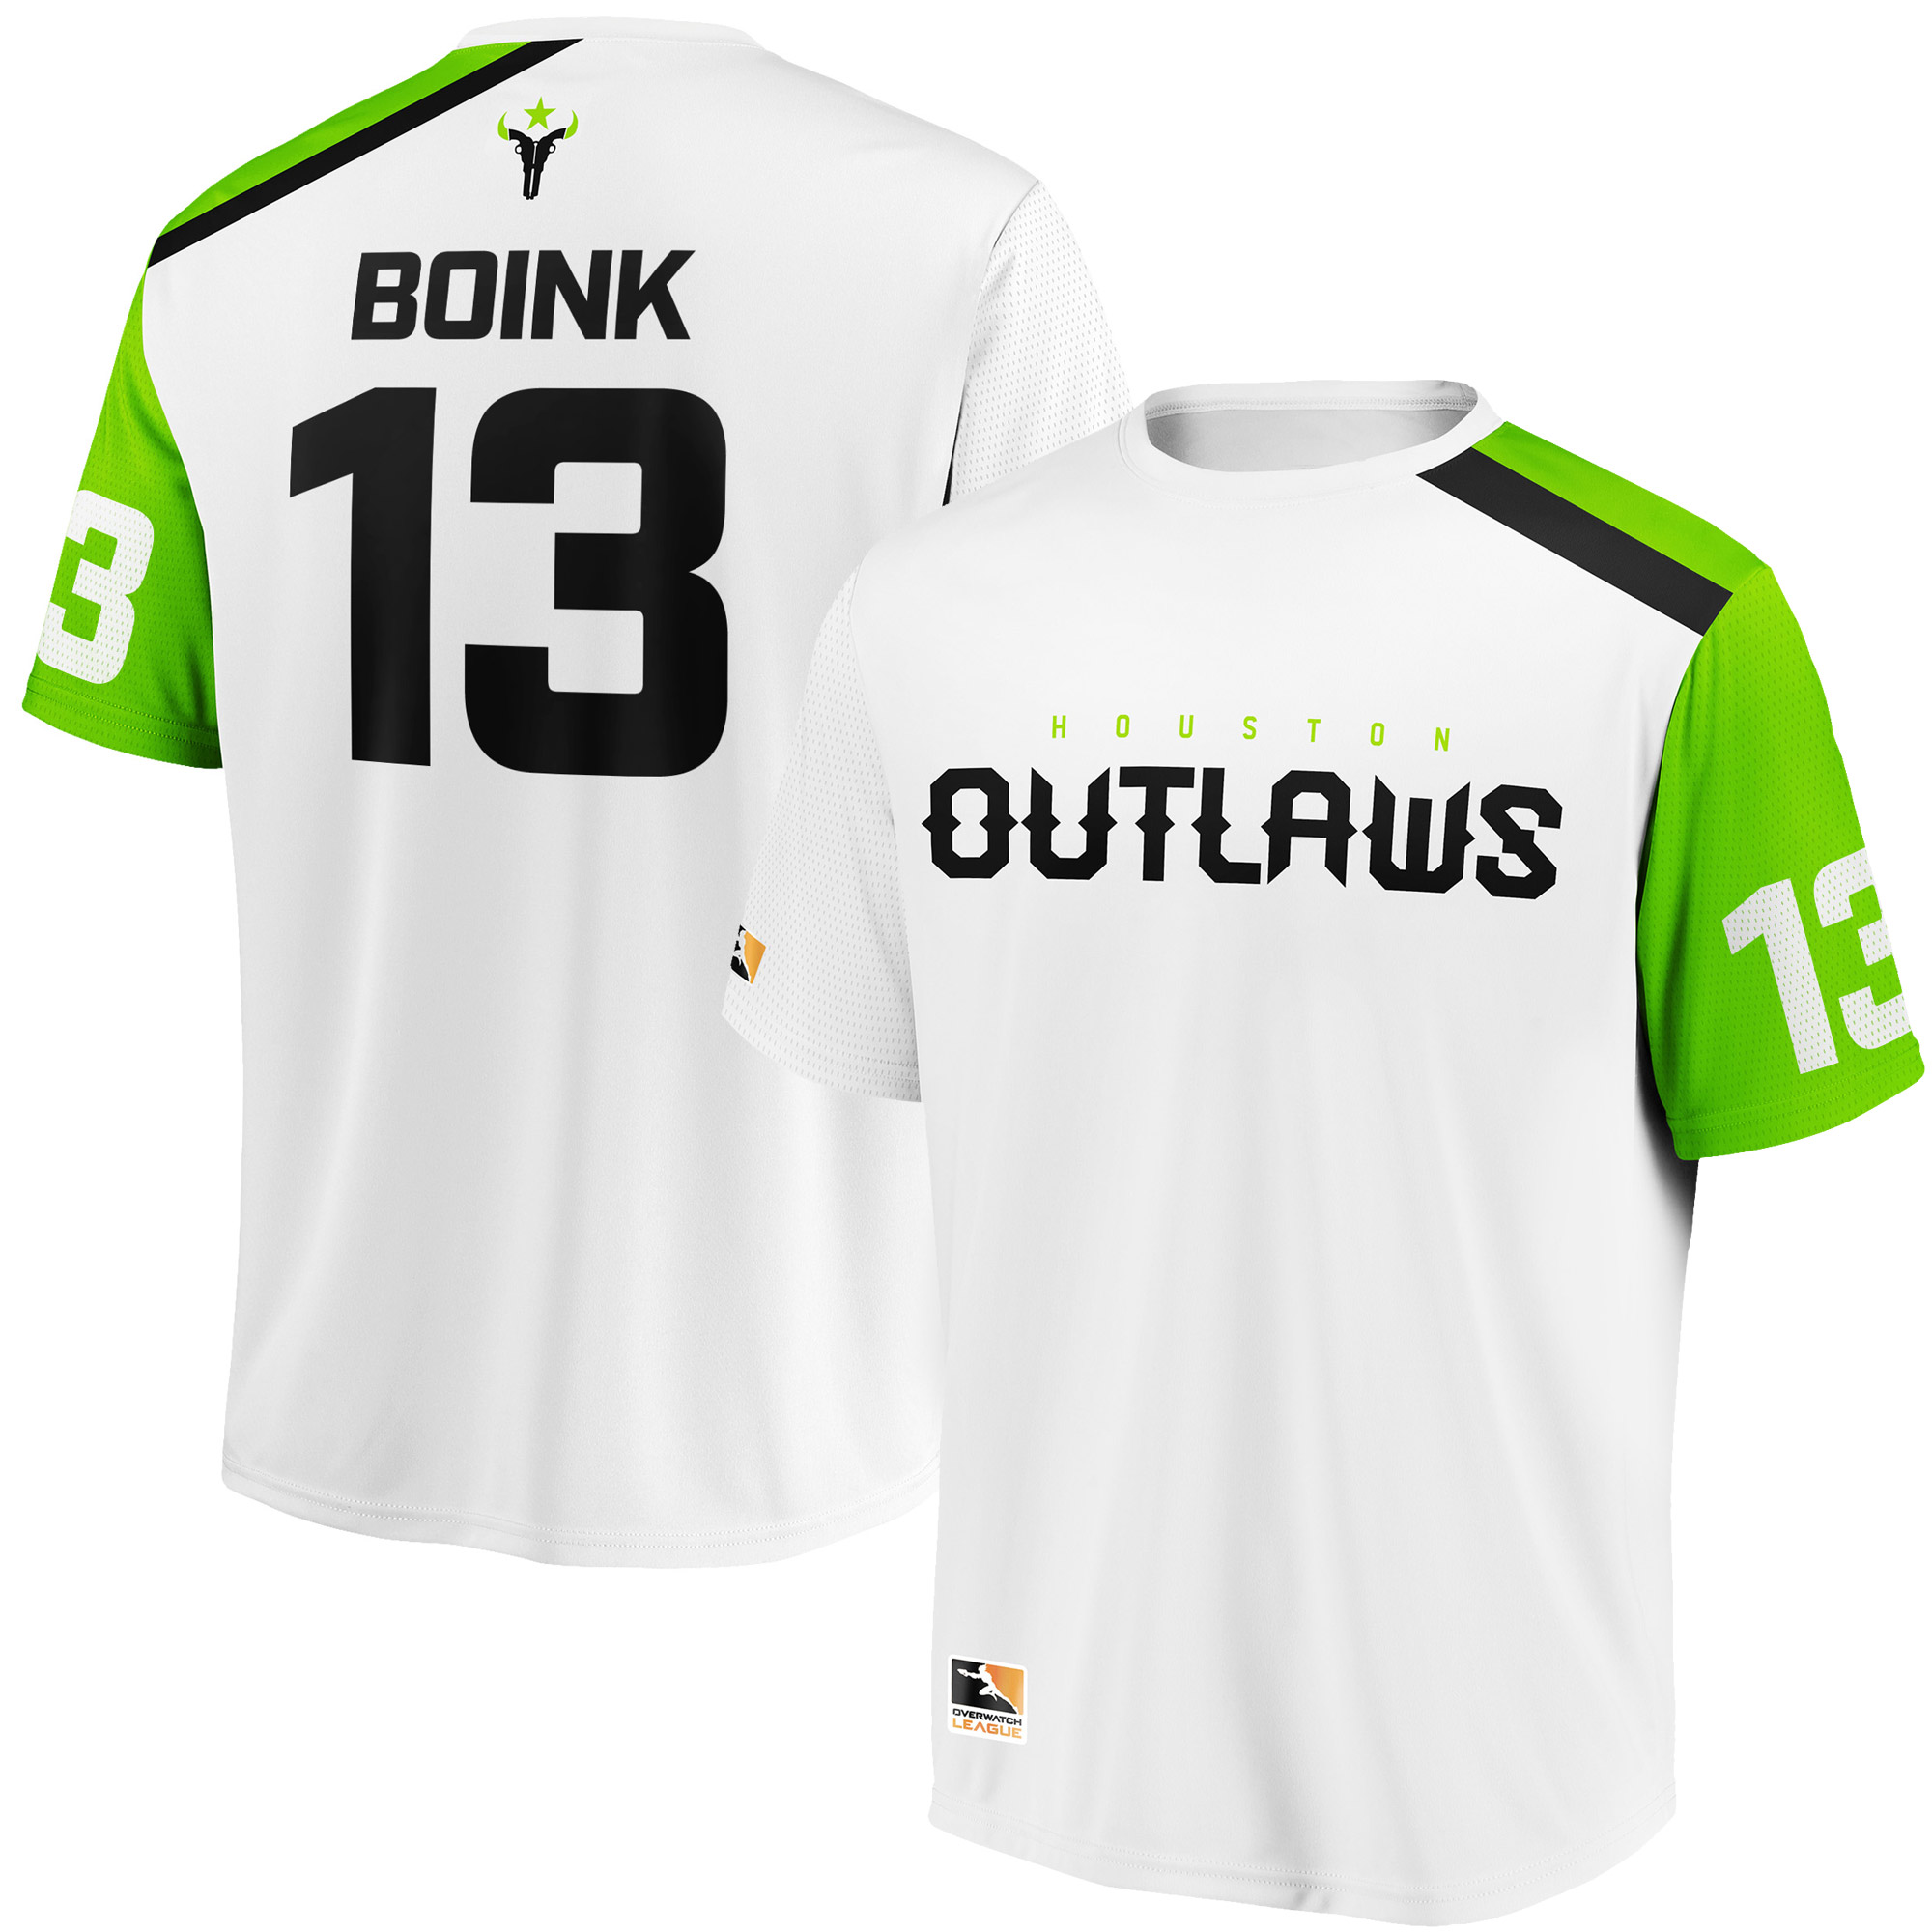 Boink Houston Outlaws Overwatch League Replica Away Jersey - White